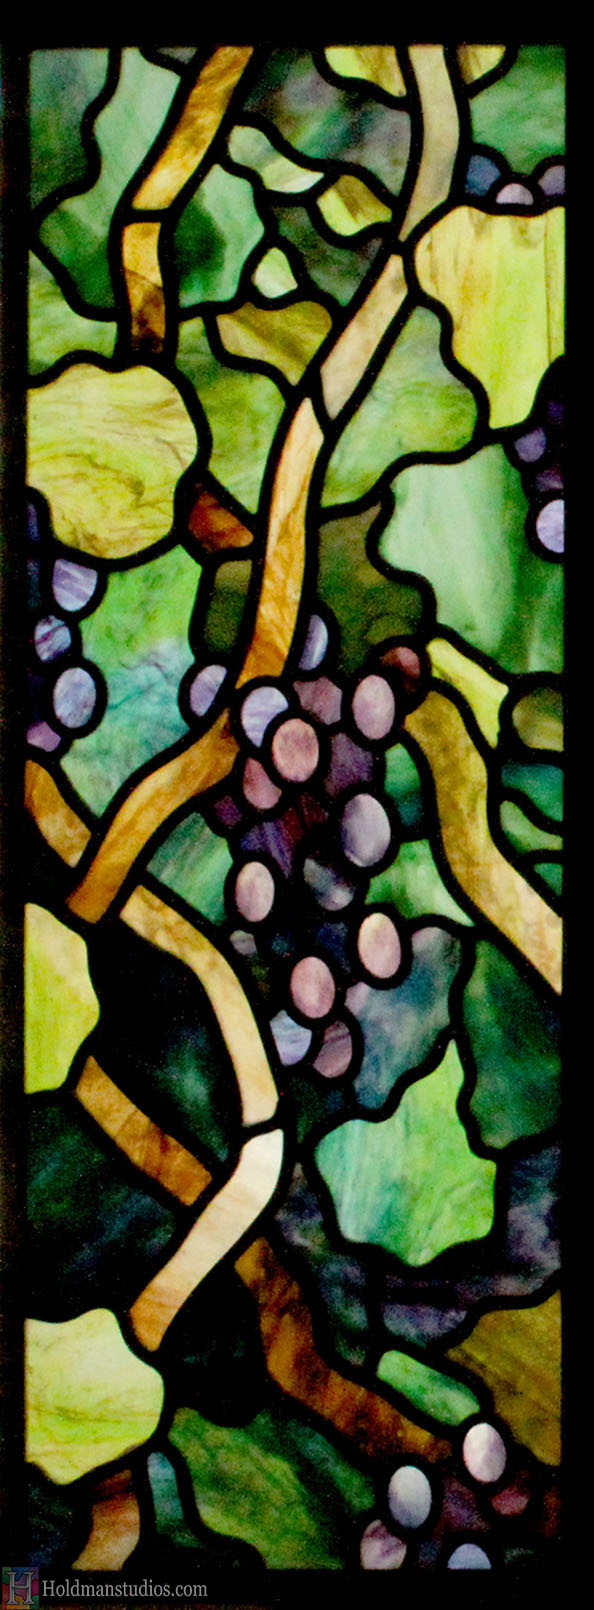 stained glass kitchen cabinet window of vines leaves blossoms and grapes created by artists under the direction of tom holdman at holdman studios